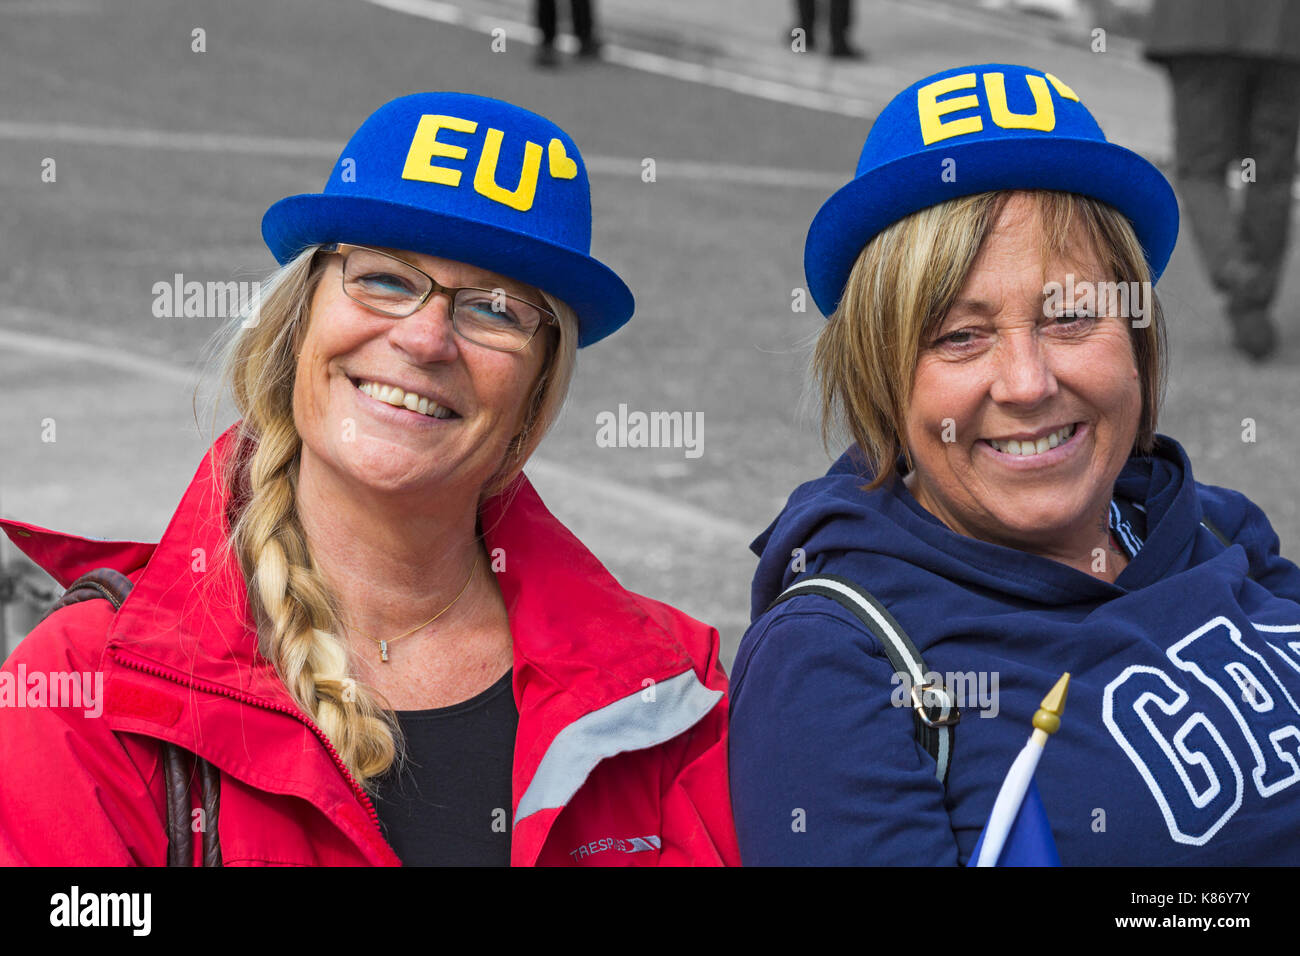 EU supporters at Stop Brexit Demonstration at Bournemouth, Dorset in September - Stock Image